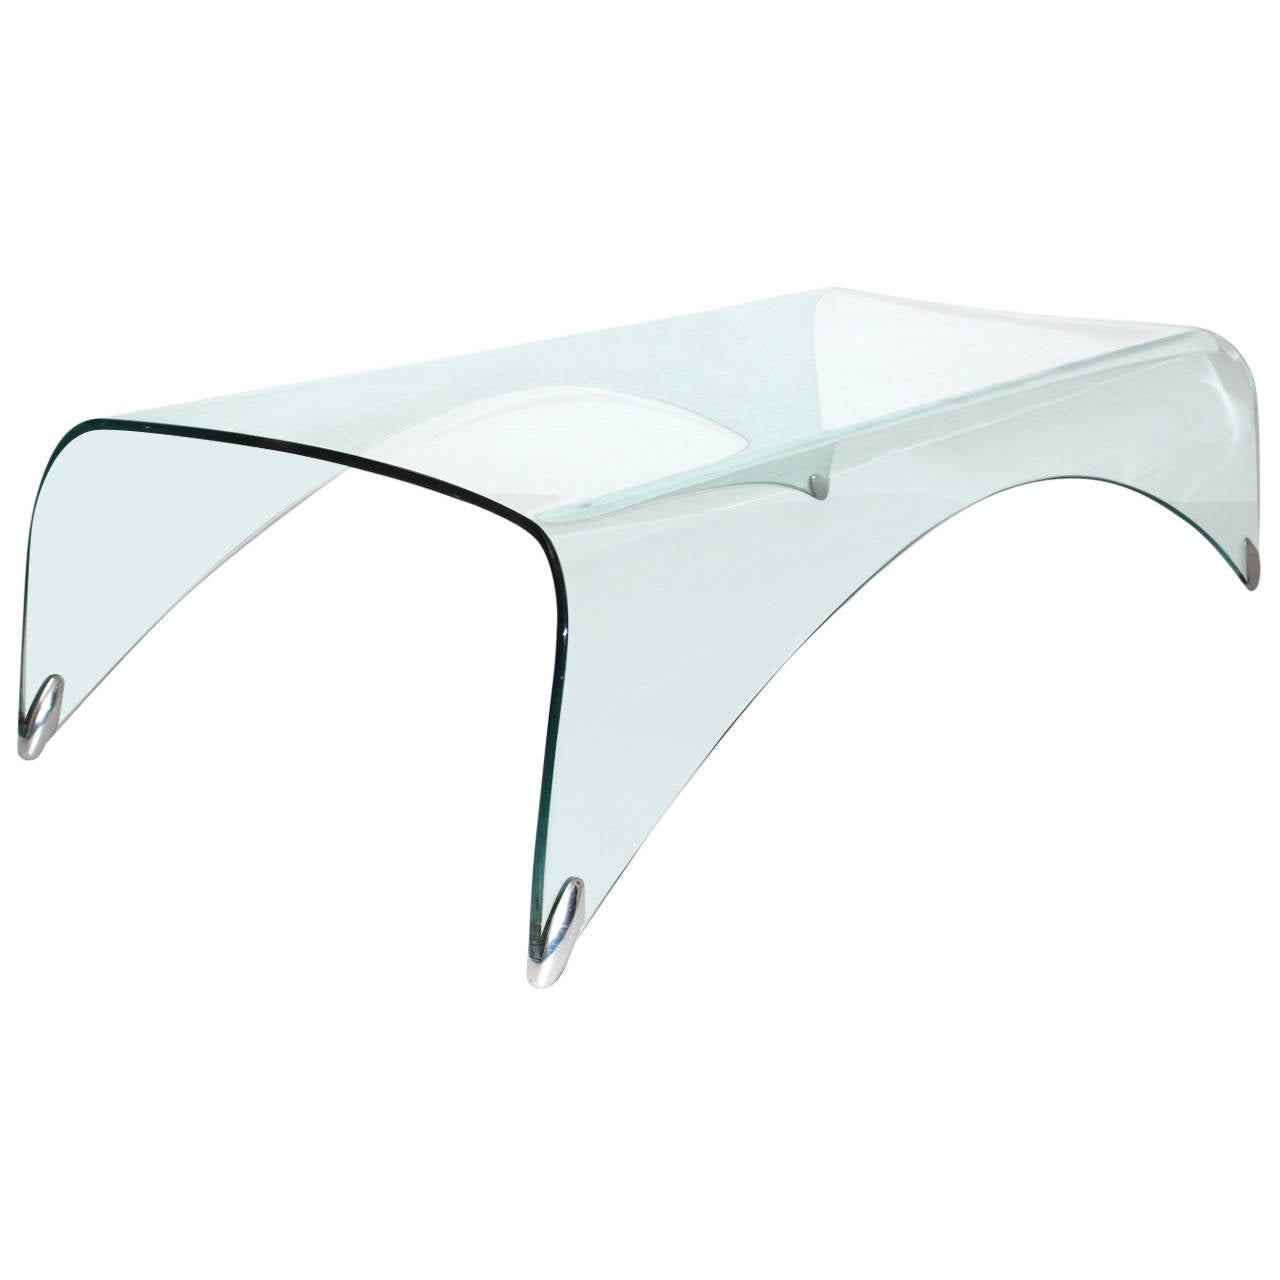 Glass Coffee Table Genio by Massimo Iosa Ghini Italy 20th Century